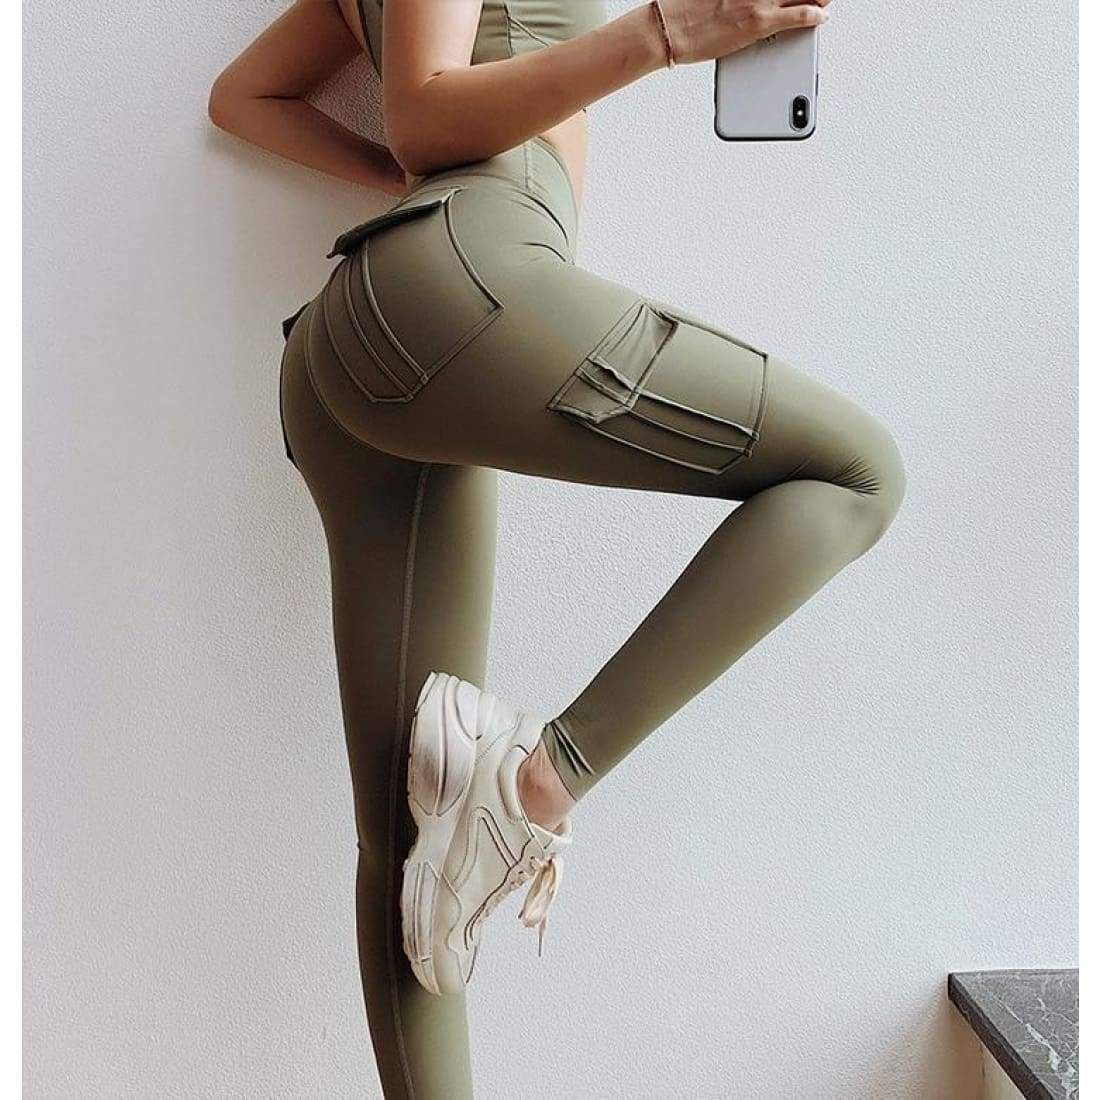 Sculpt cargo leggings - M / Army Green - high waist pockets yoga sport workout running